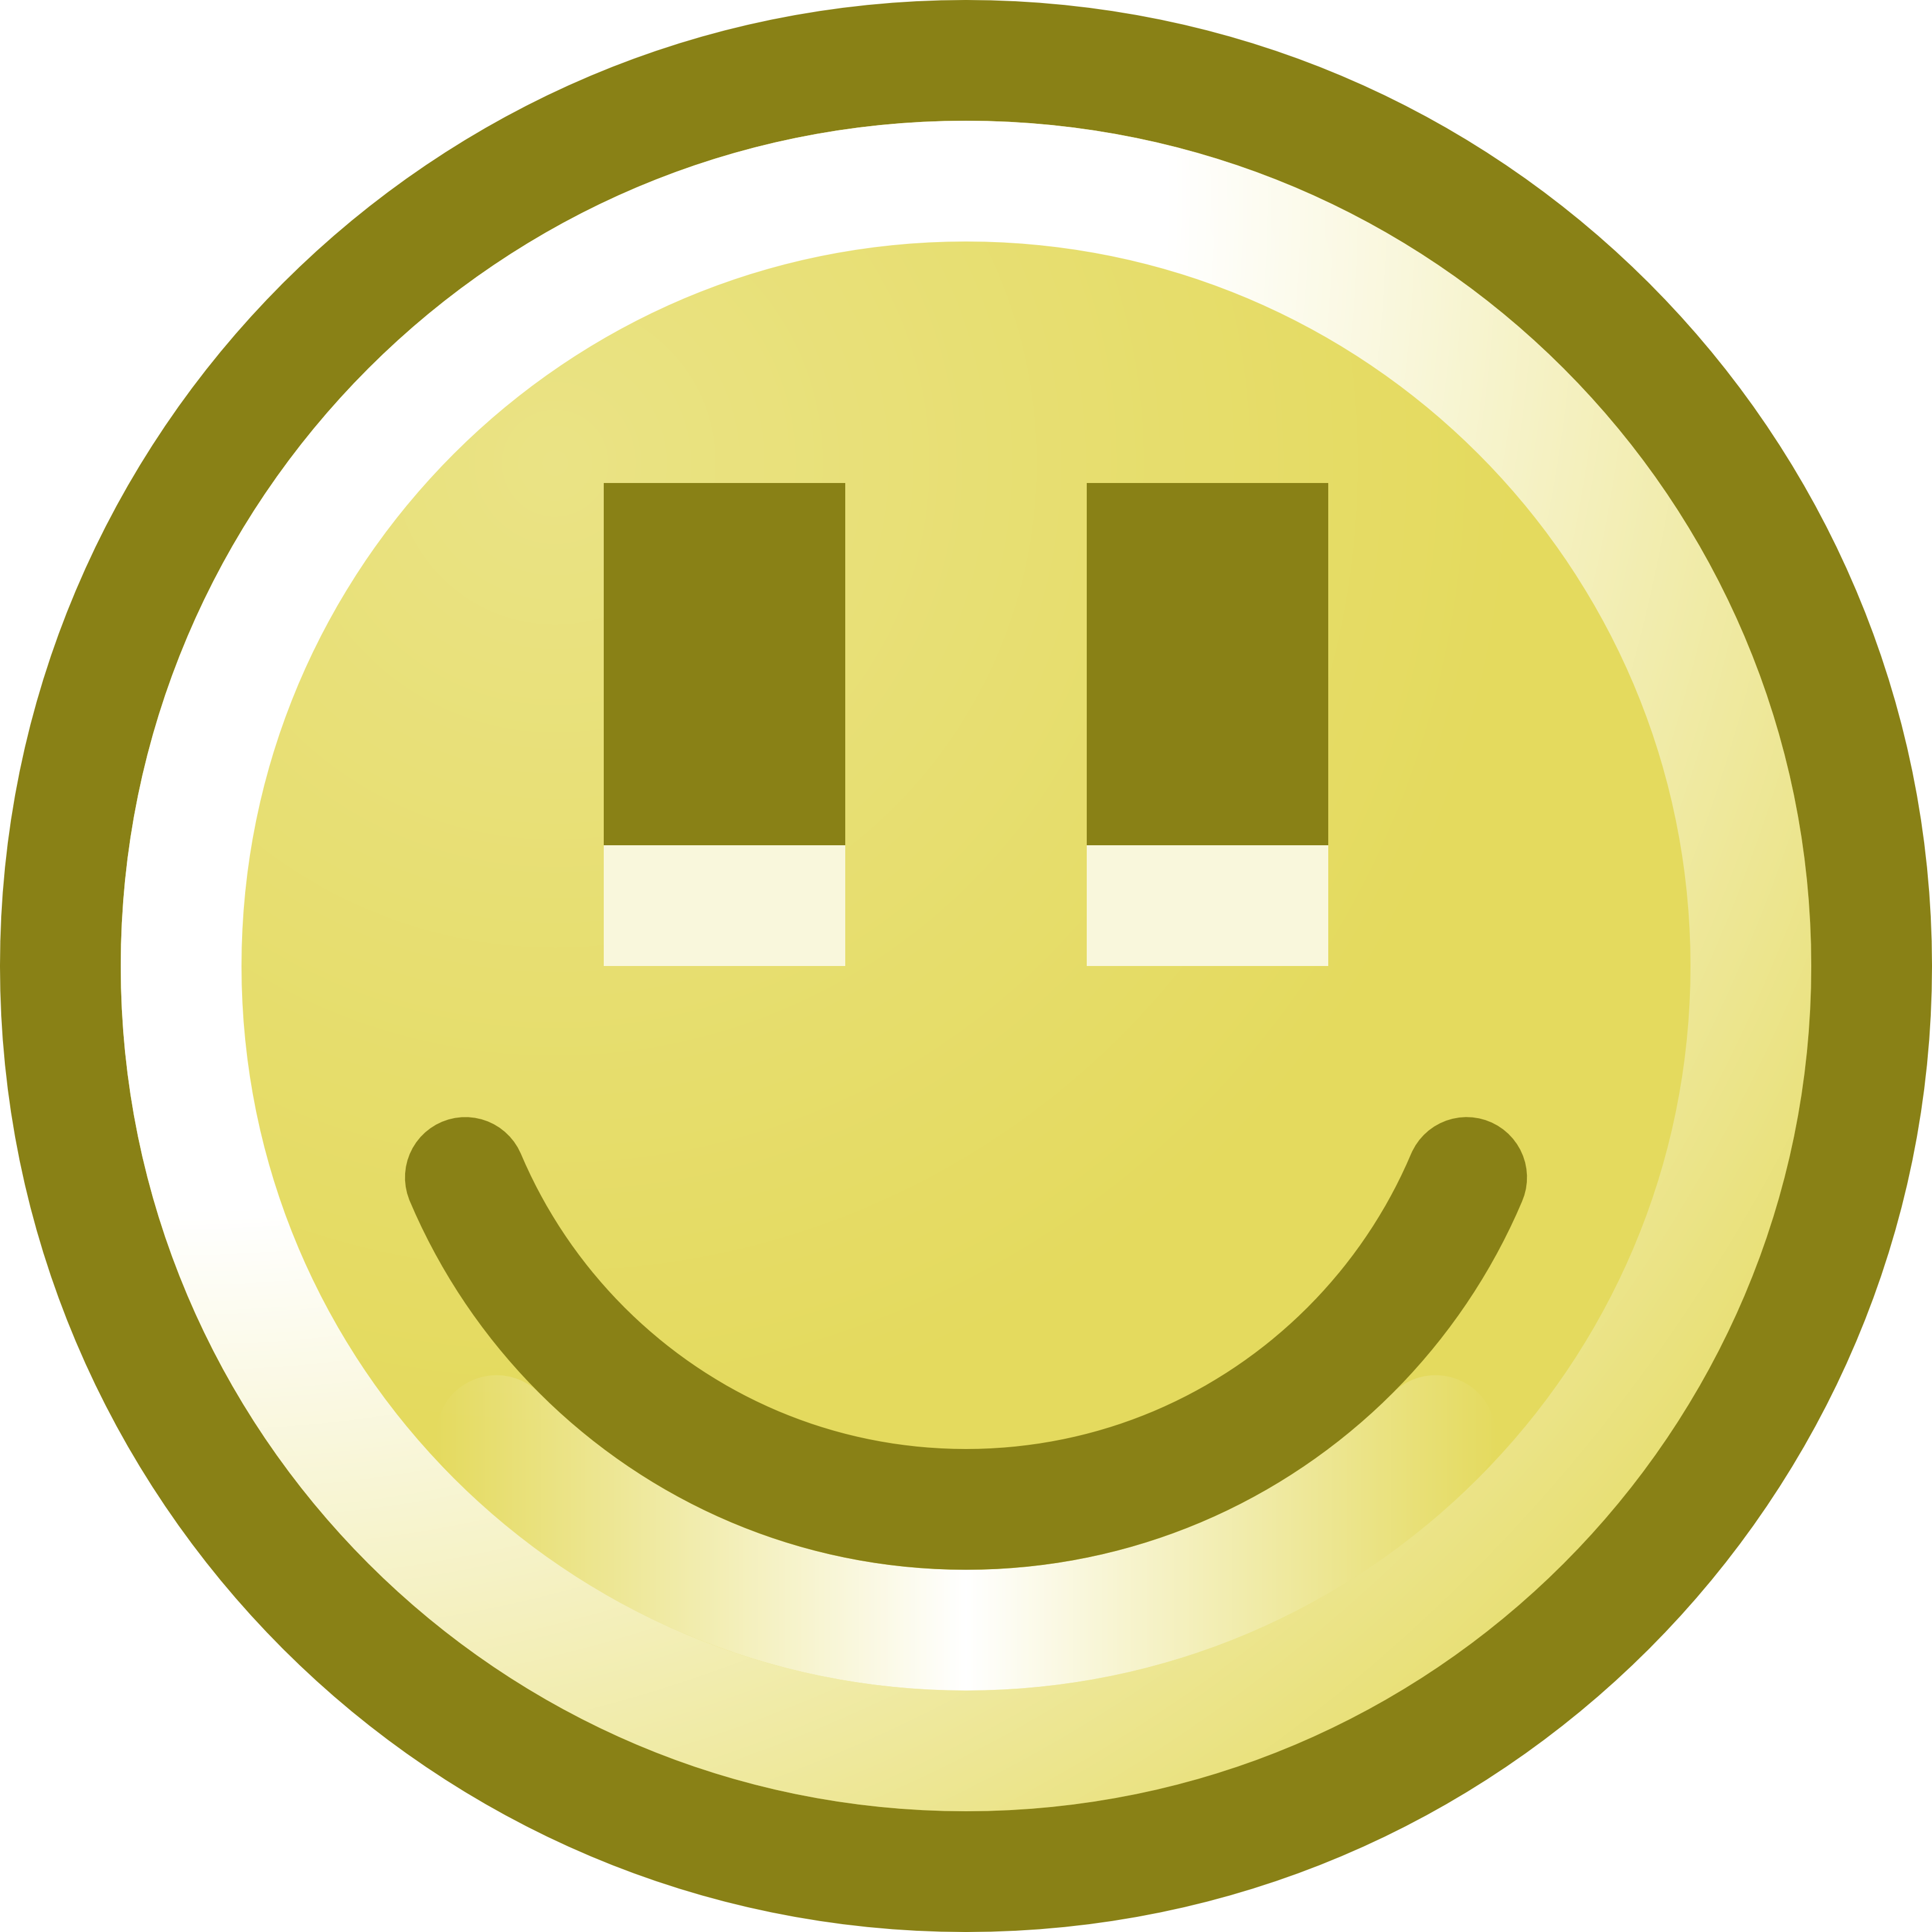 Free Smiling Smiley Face Clip Art Illustration by 000121